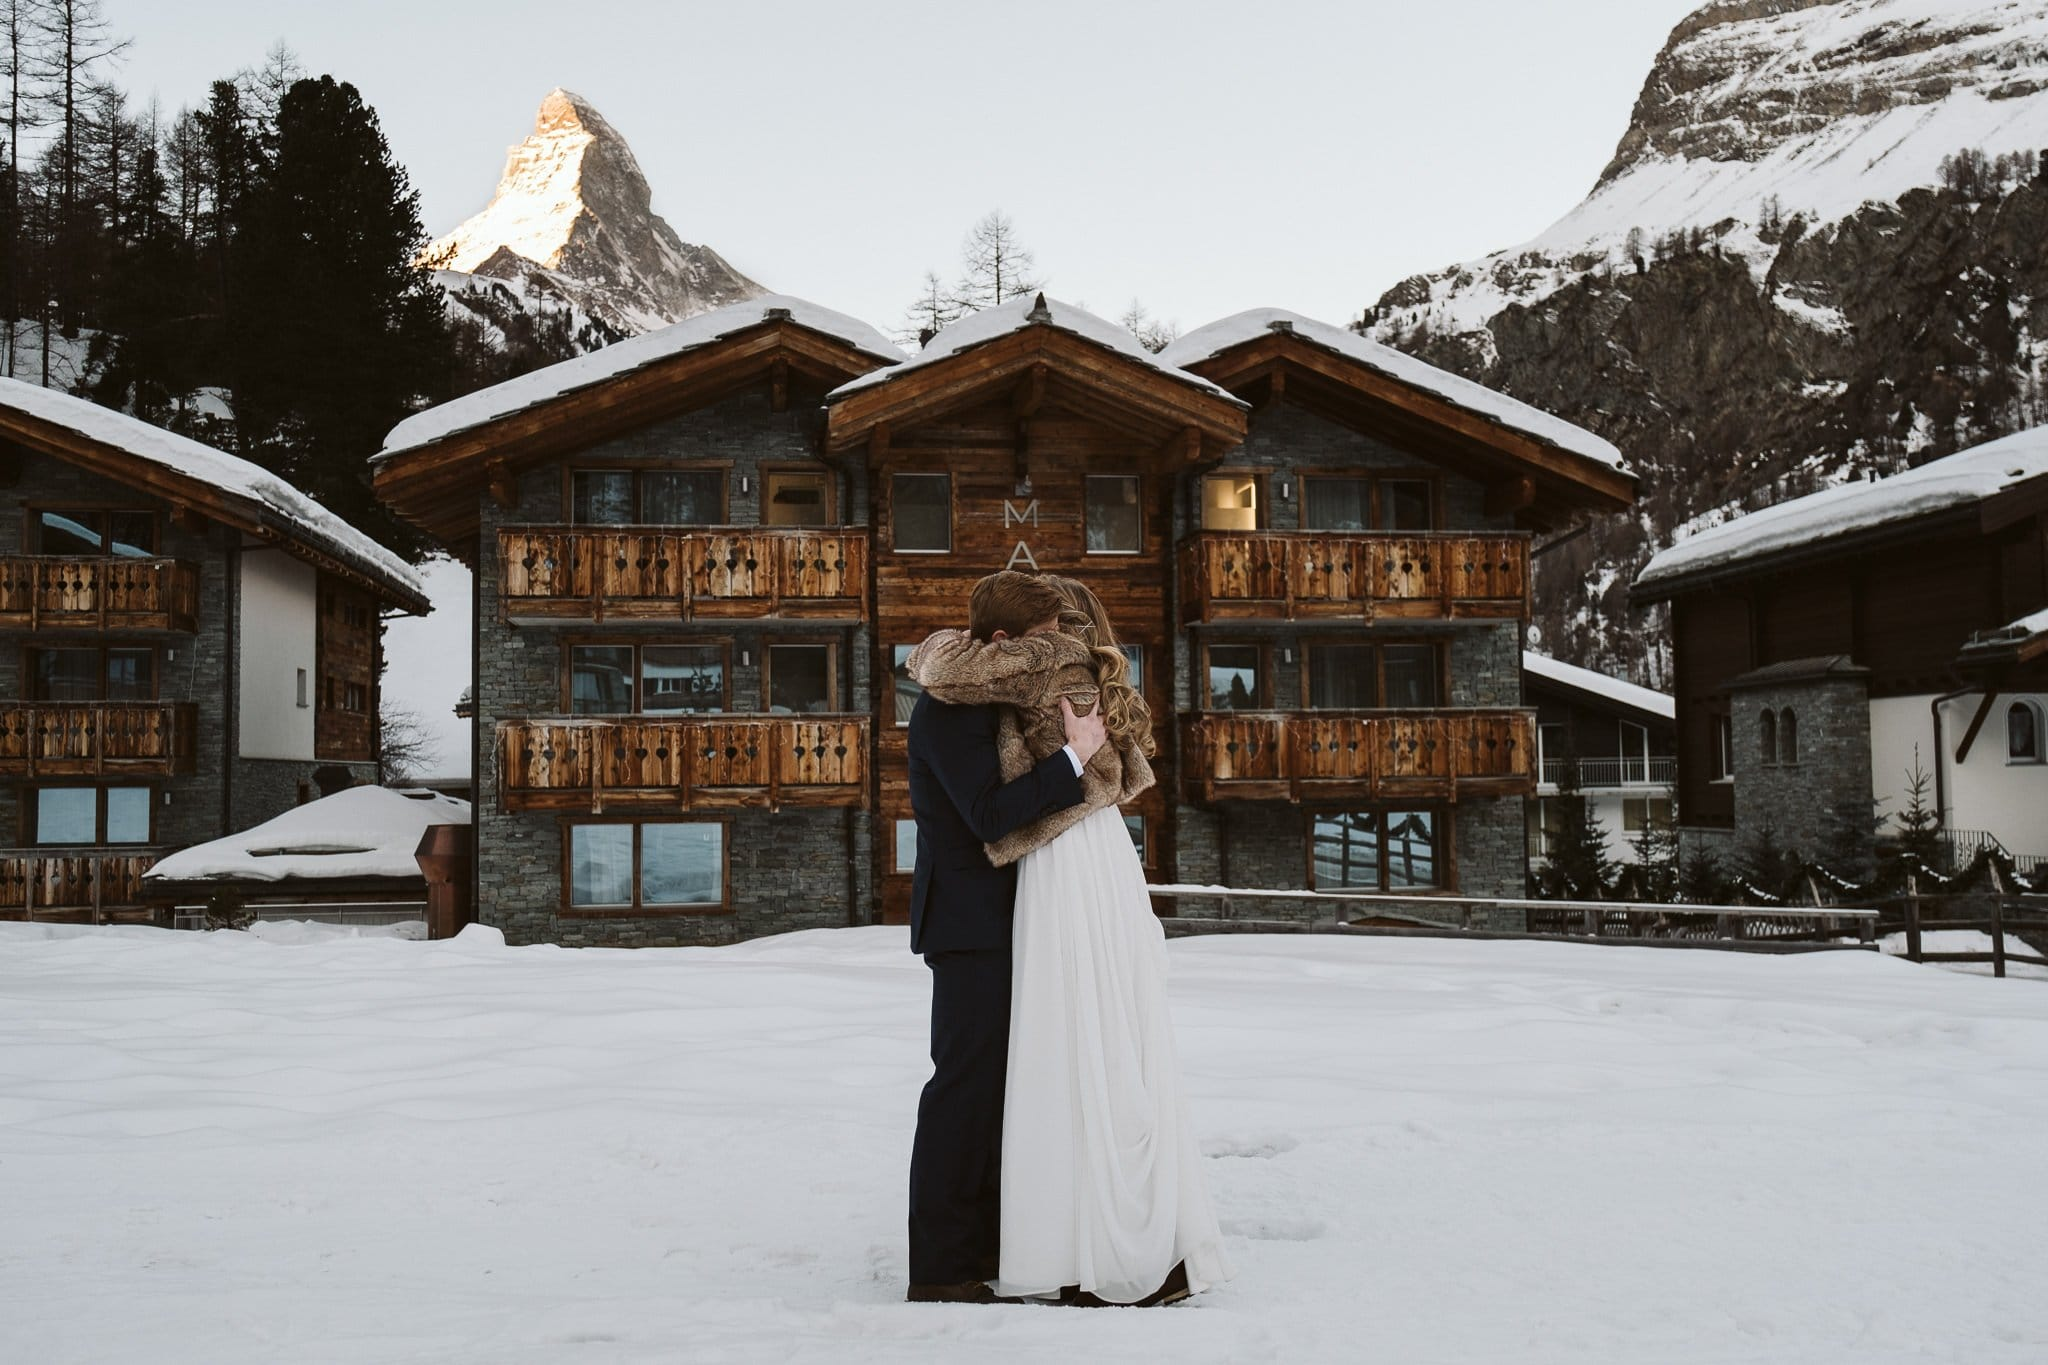 Bride and groom first look outside of Matthiol Boutique Hotel in Zermatt. Switzerland adventure elopement at Matterhorn.